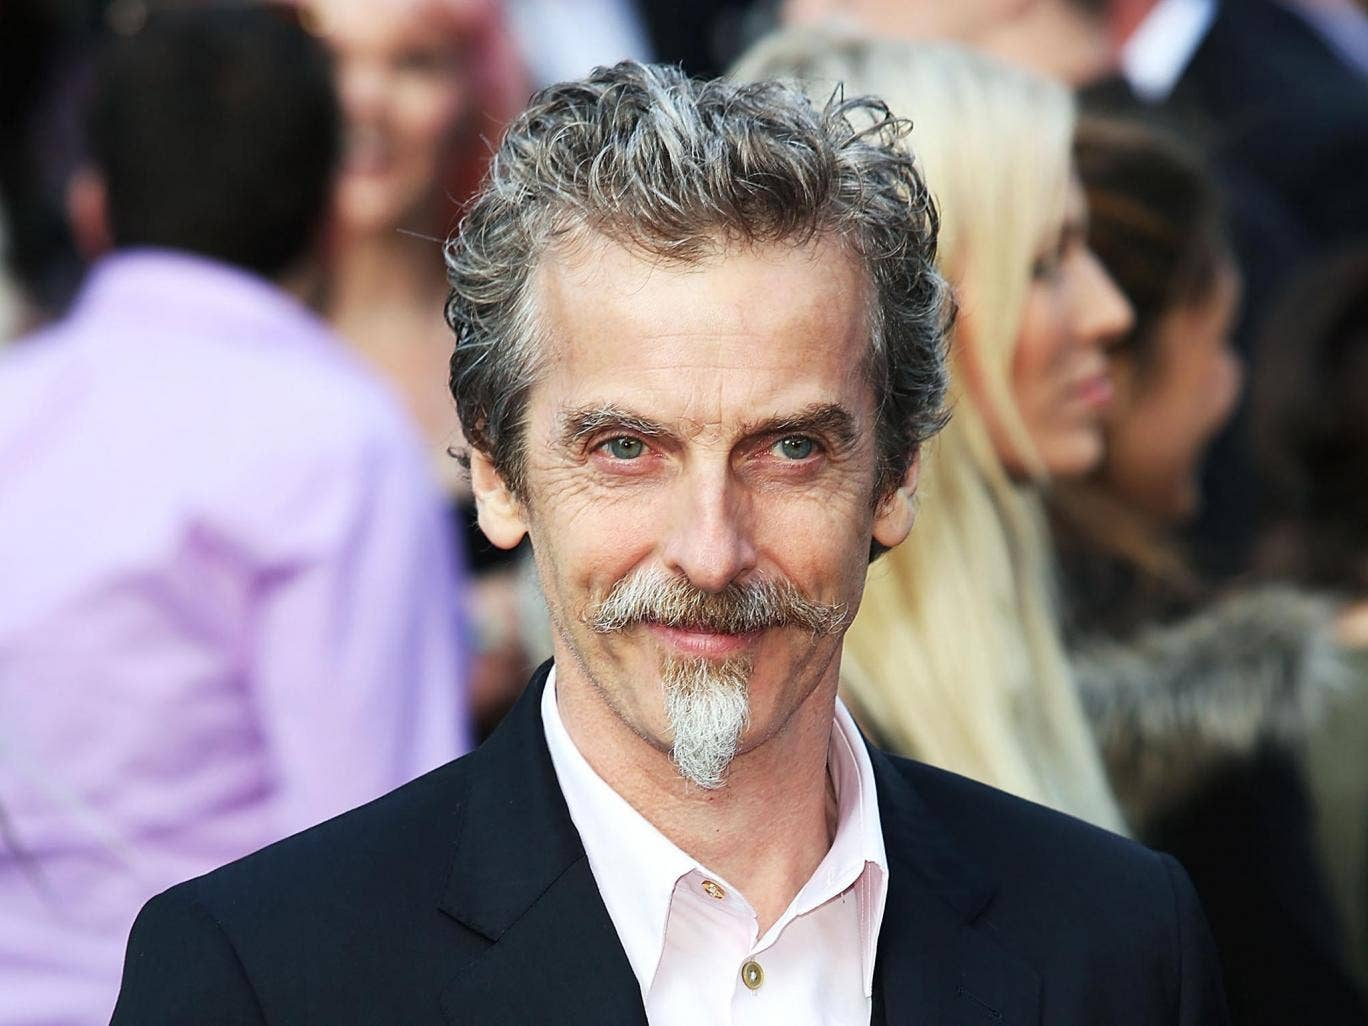 Peter Capaldi who will be playing the twelfth Doctor